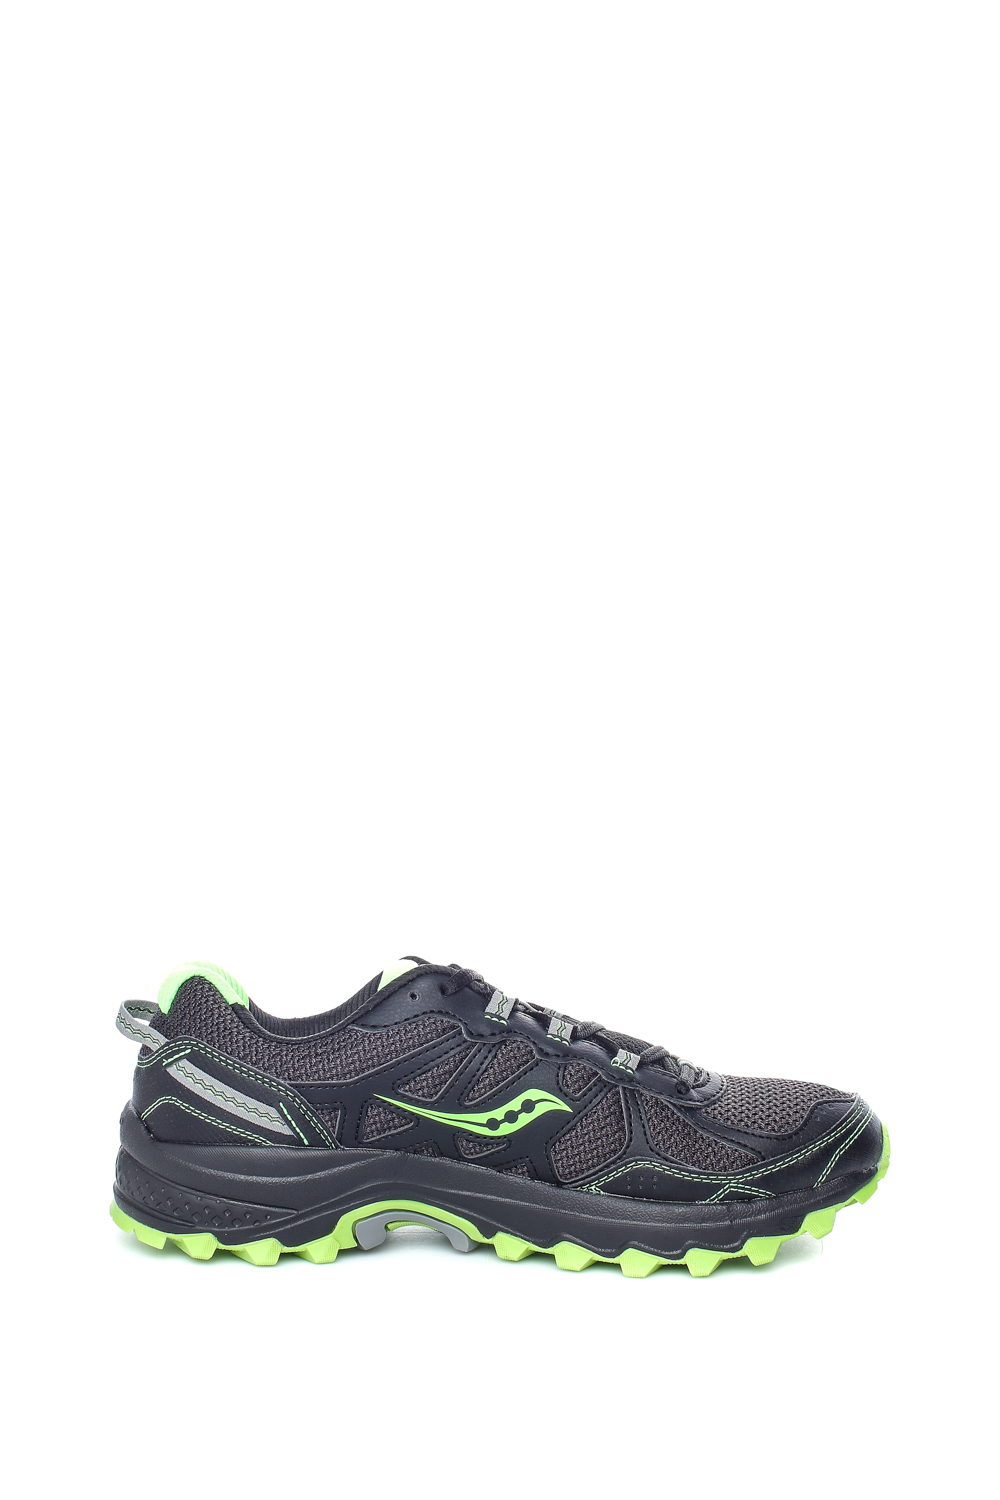 SAUCONY – Ανδρικά αθλητικά παπούτσια EXCURSION TR11 ανθρακί